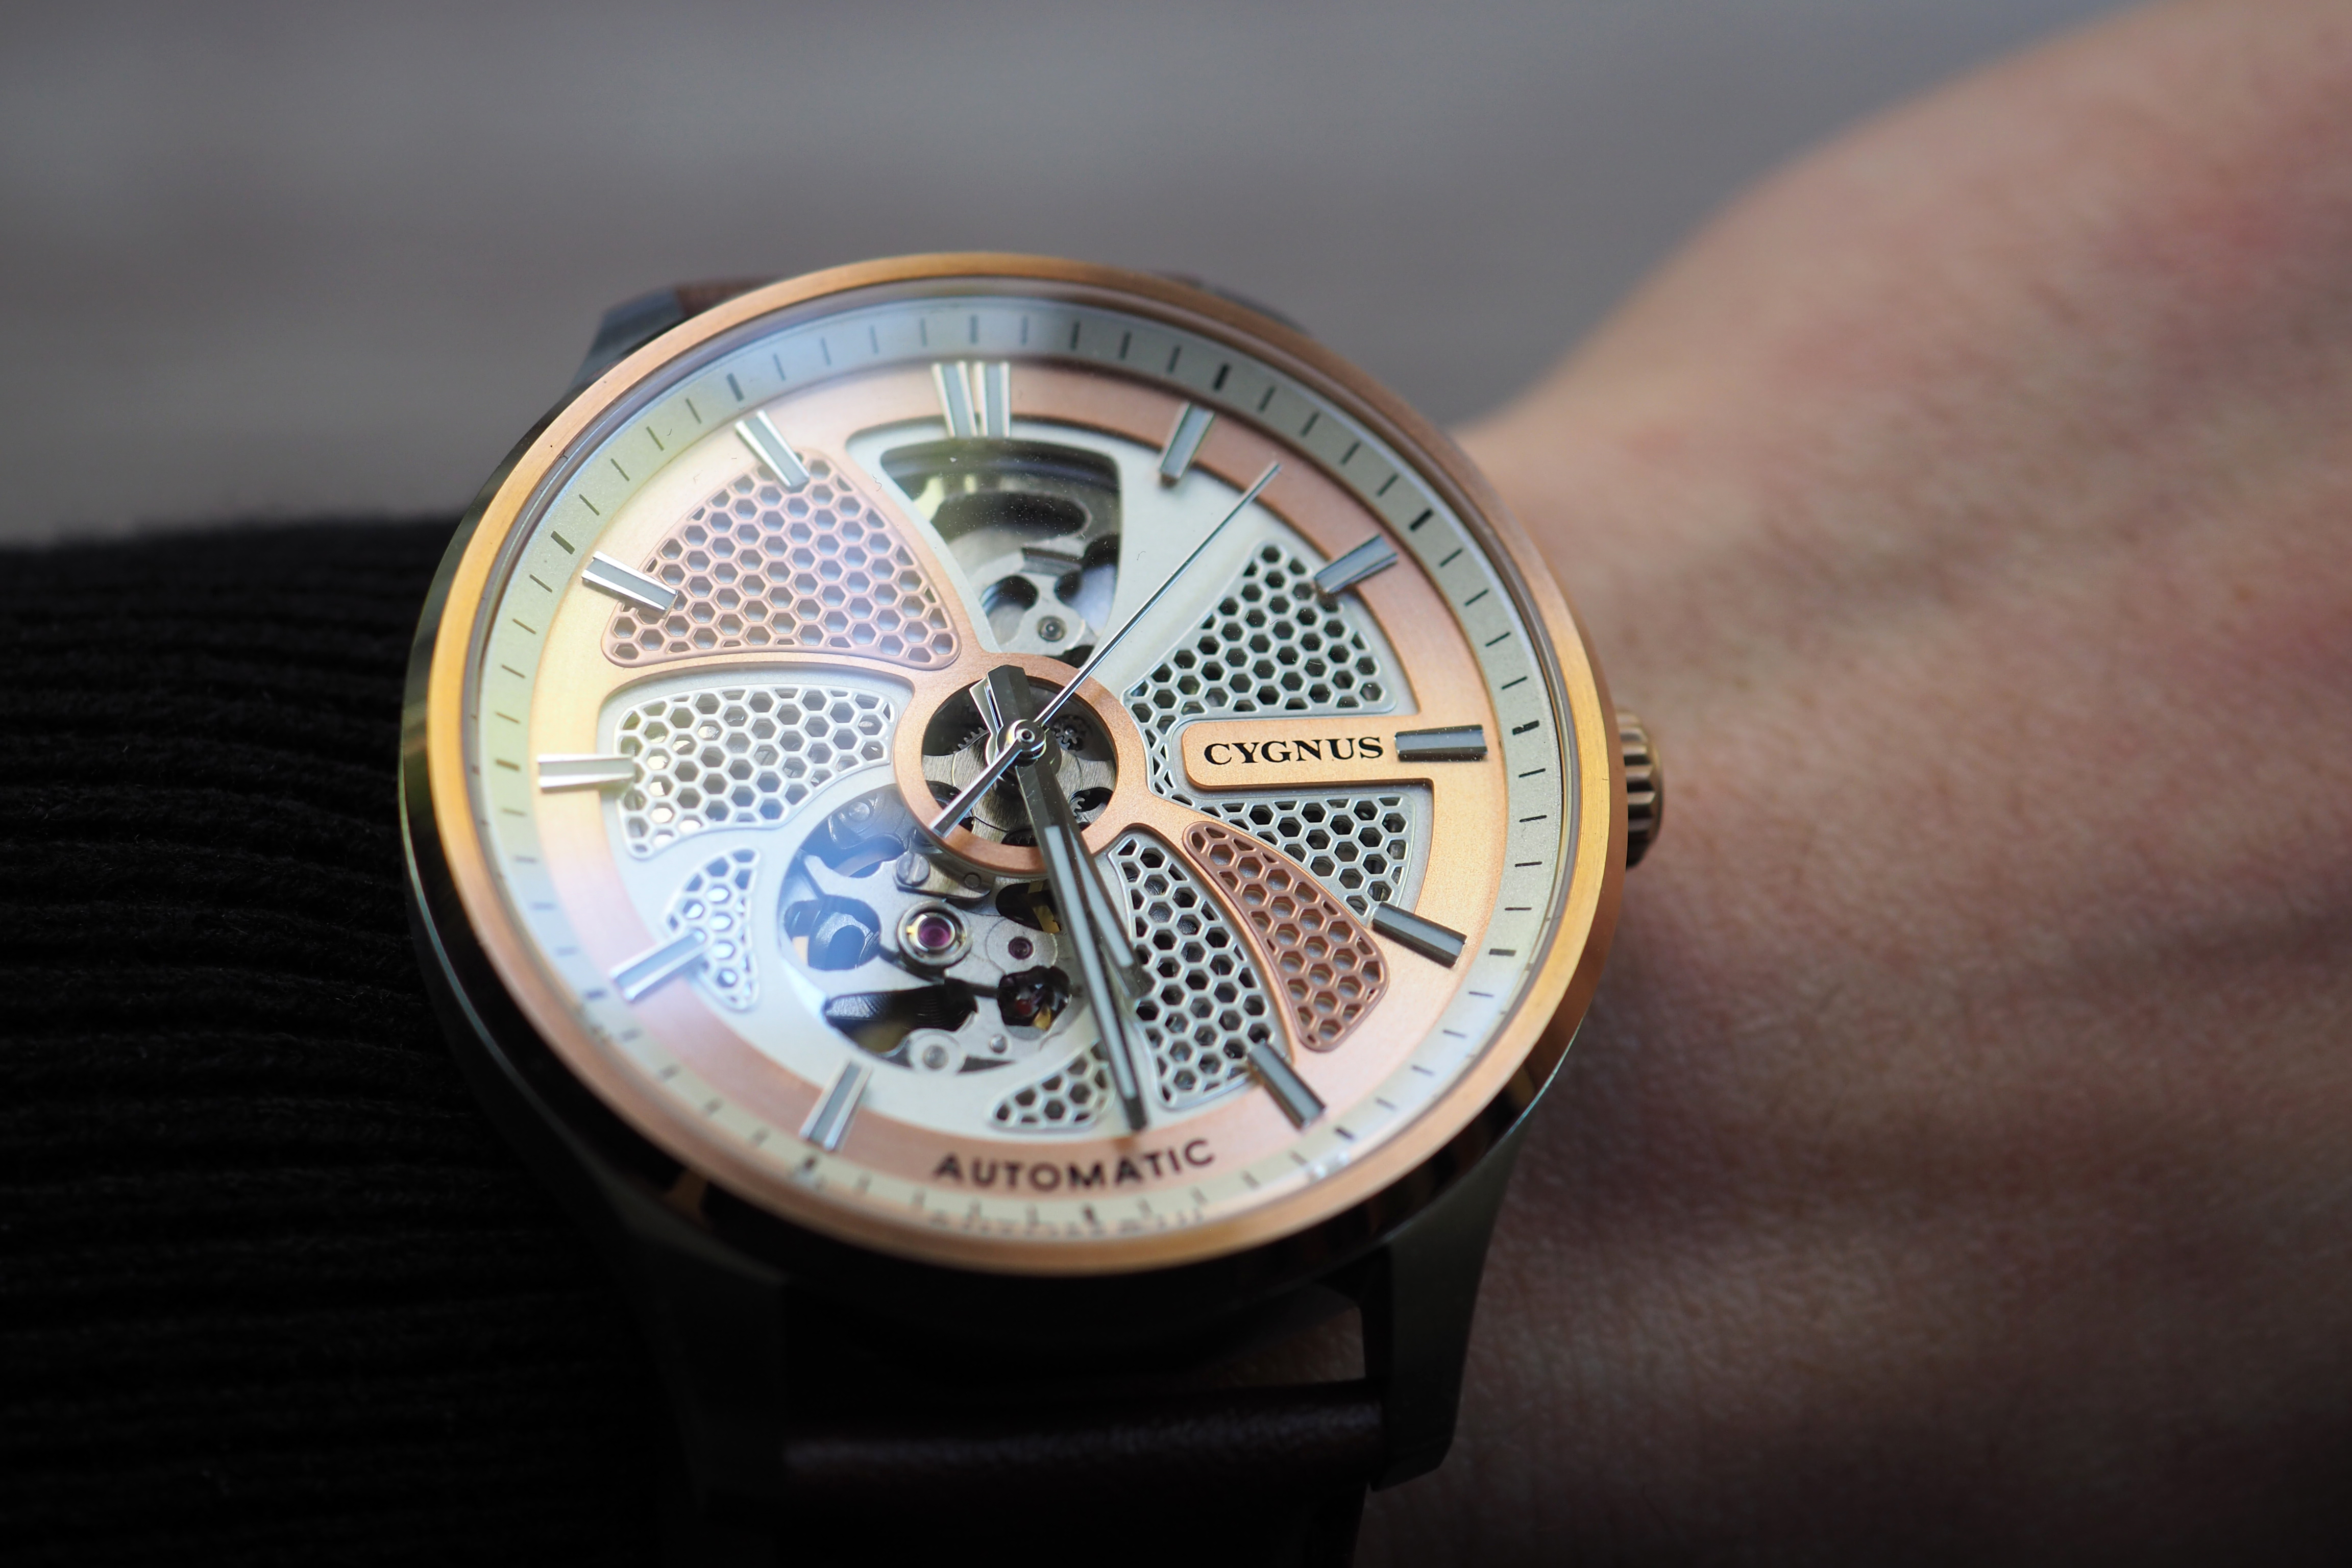 Cygnus Deneb Watch Review